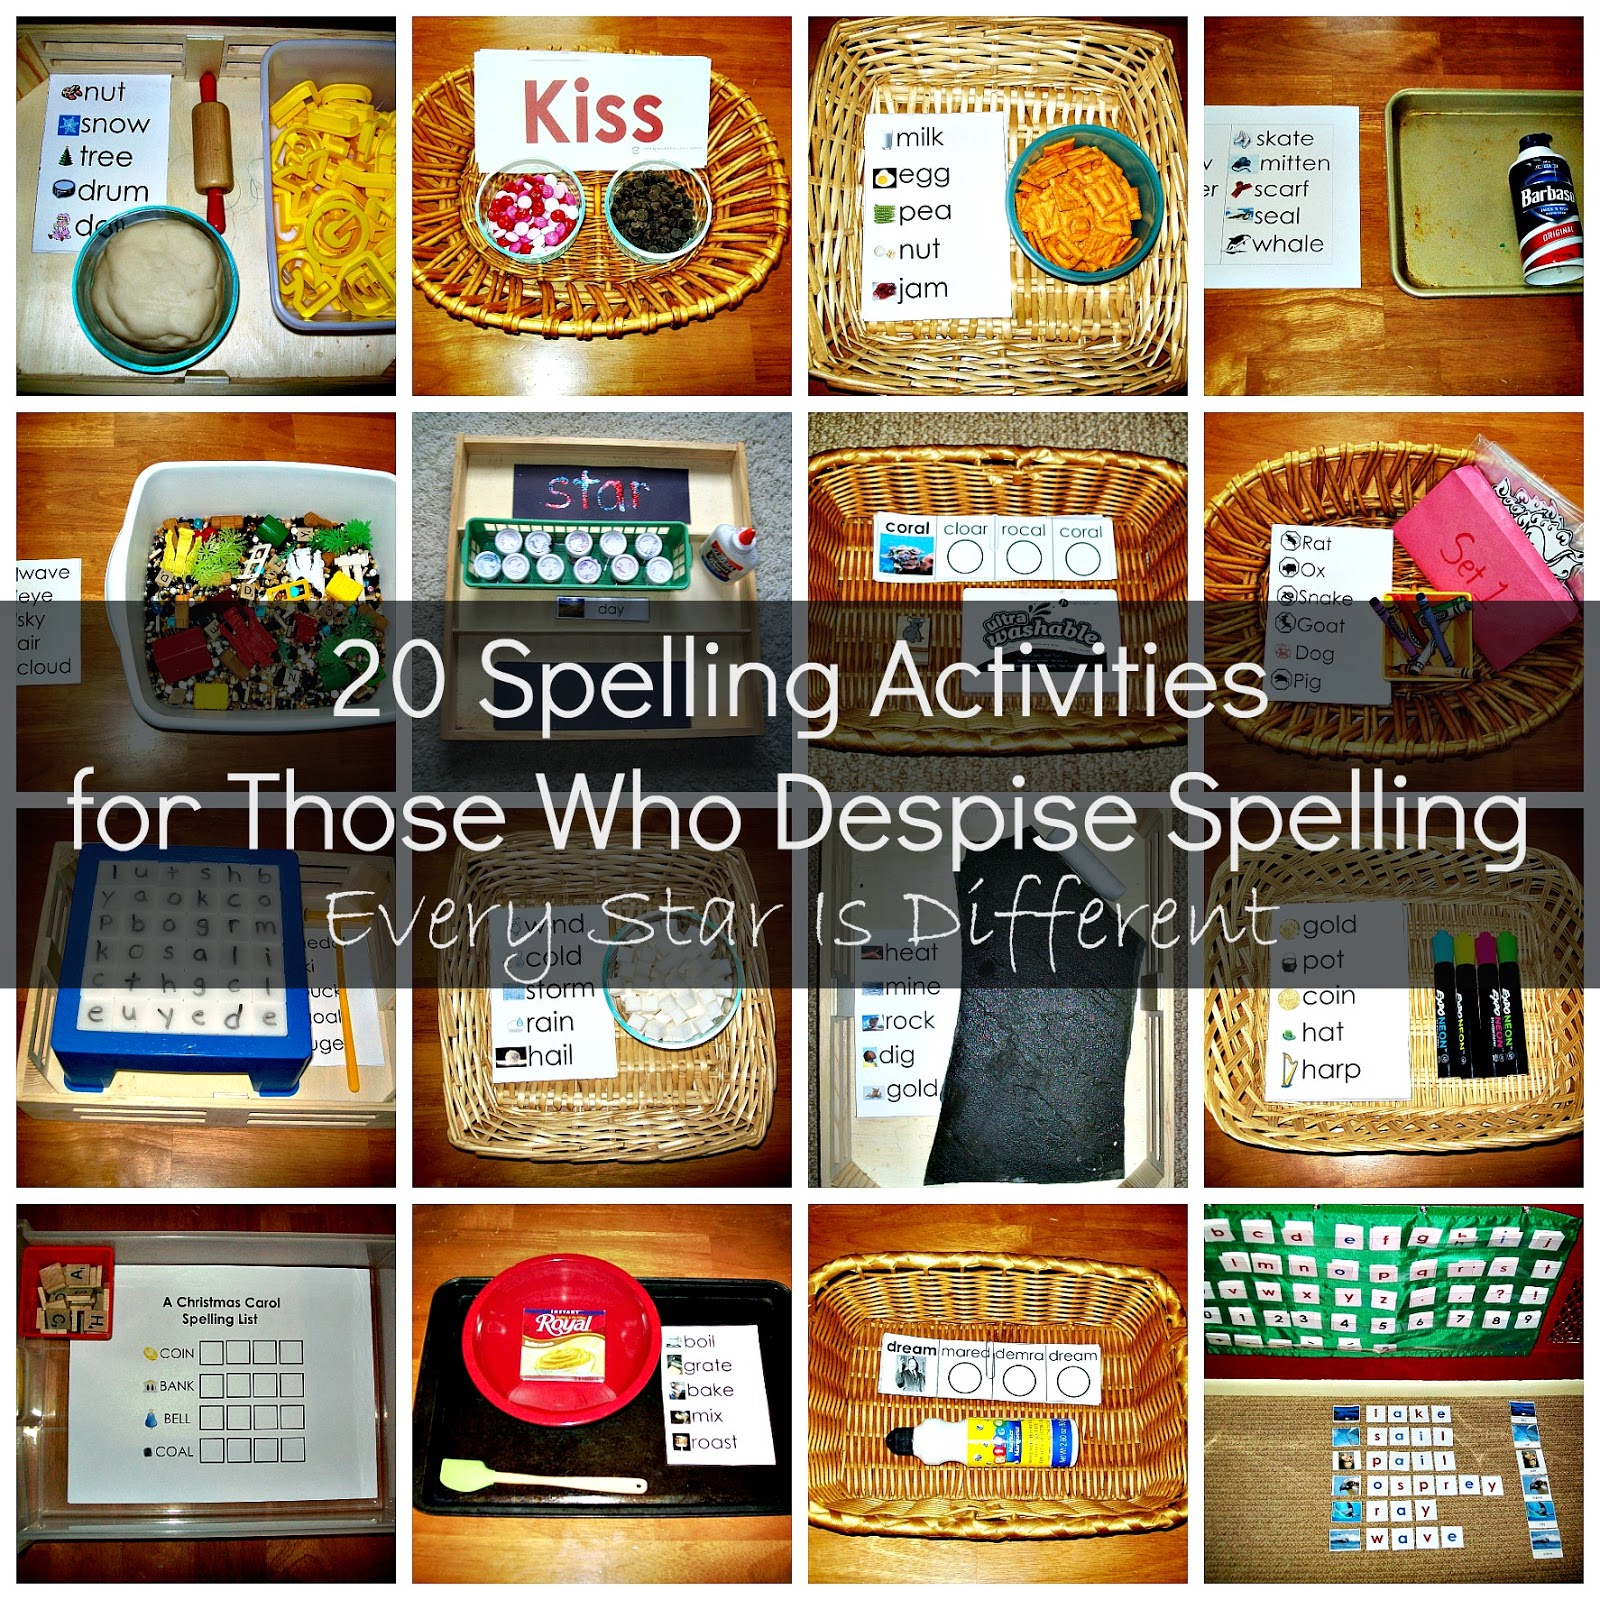 20 Spelling Activities For Those Who Despise Spelling